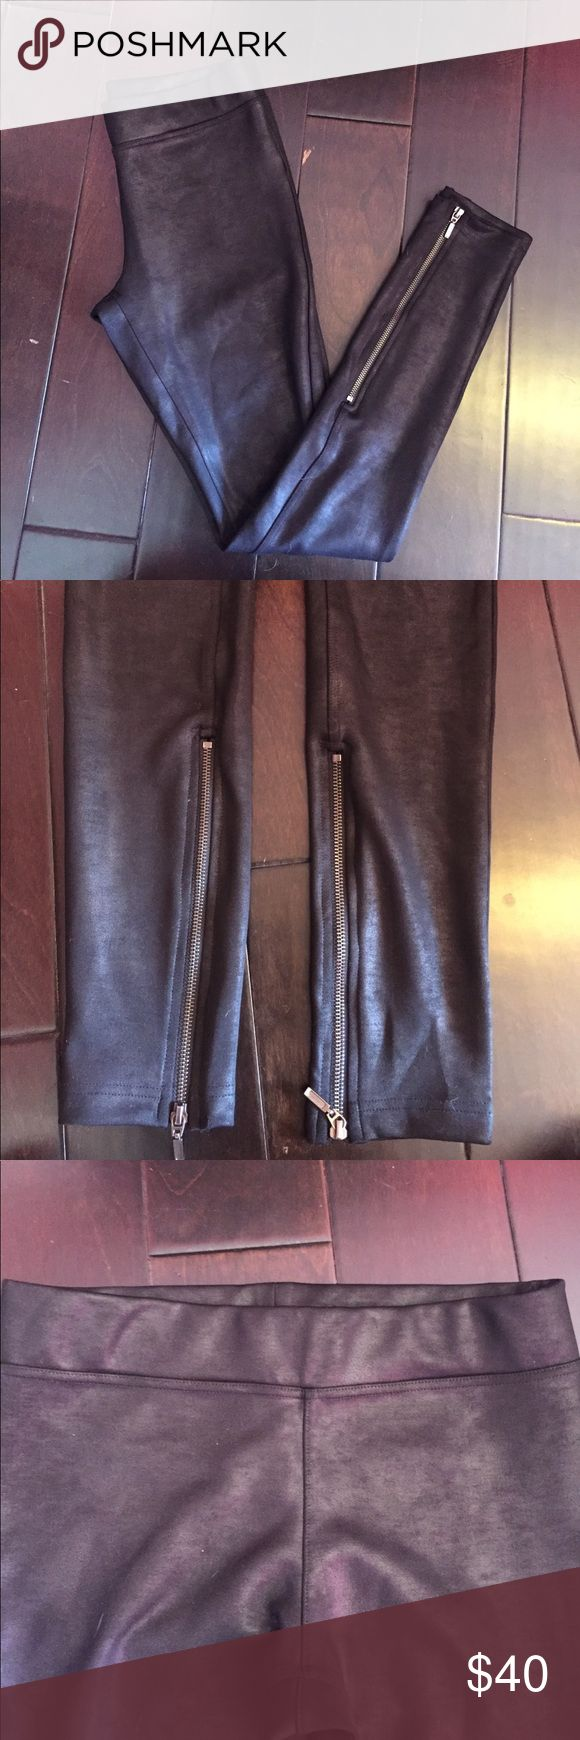 Faux leather leggings from FreePeople High waisted leggings from FreePeople. Thicker material, looks like faux leather, zippers on inside of ankle. Free People Pants Leggings